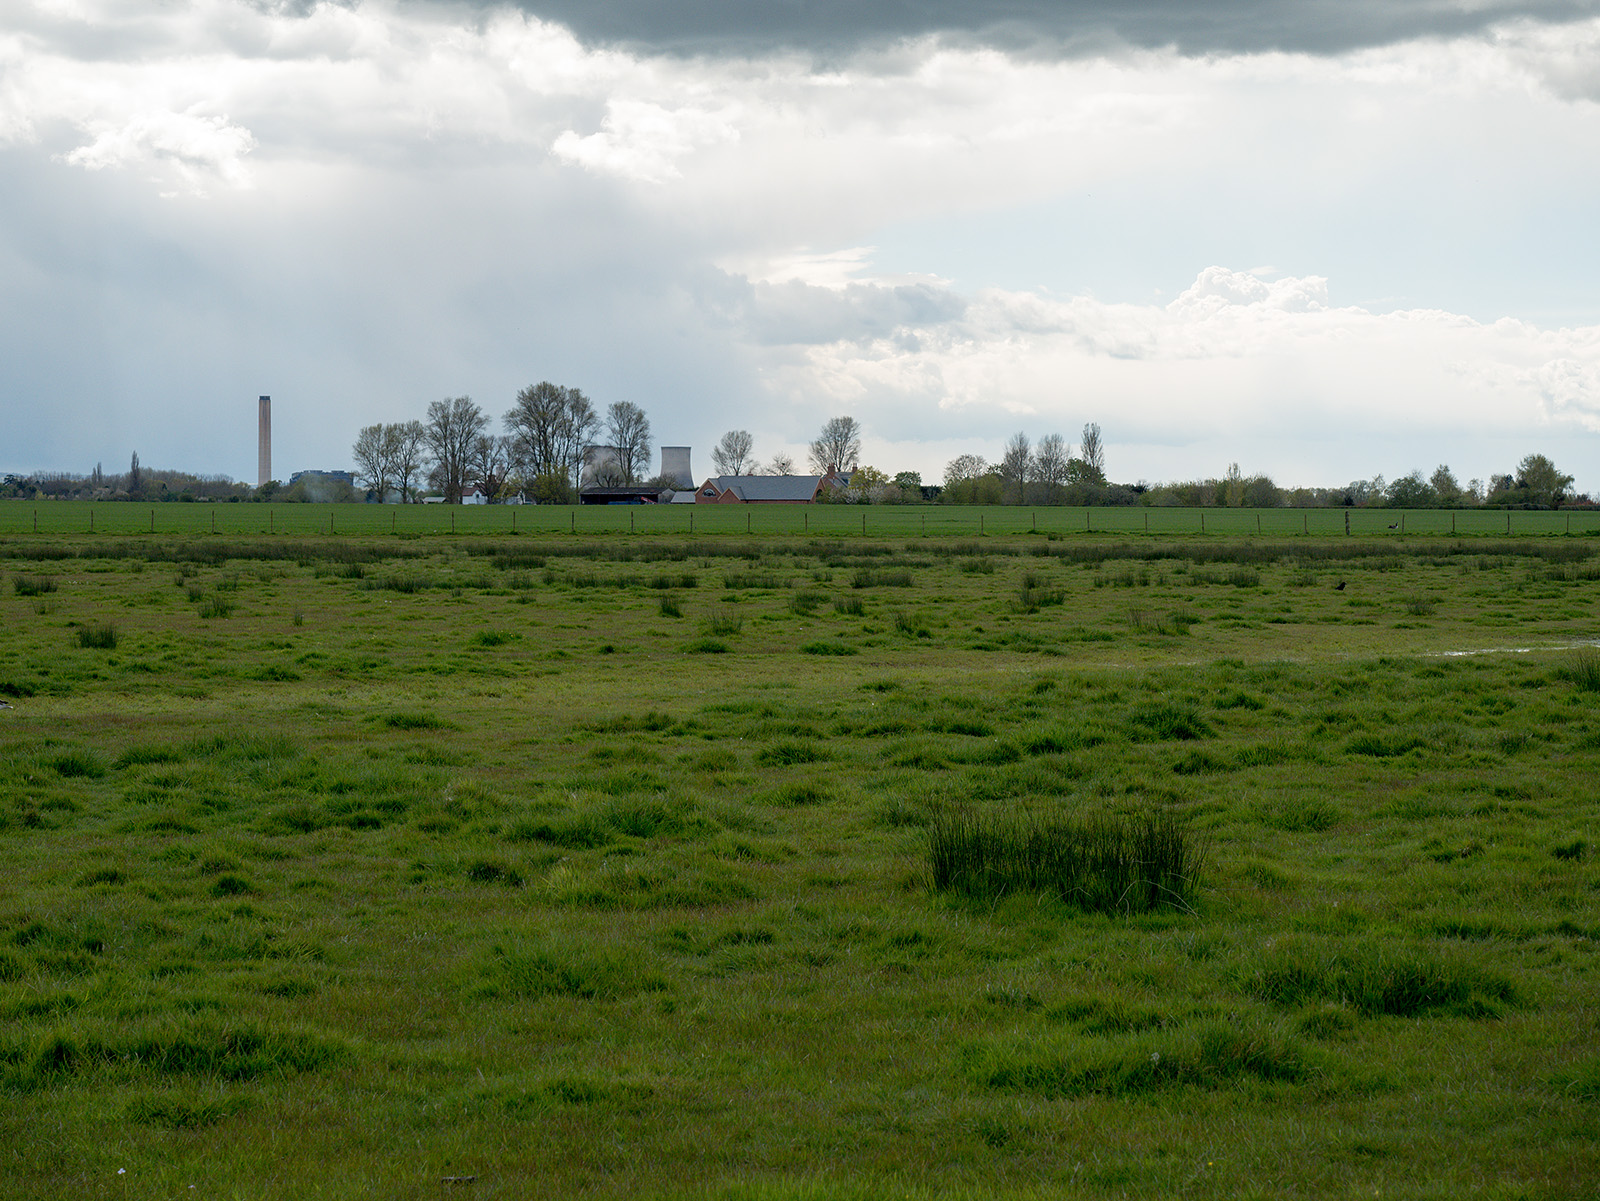 Didcot power station comes into view again - a common feature of this walk